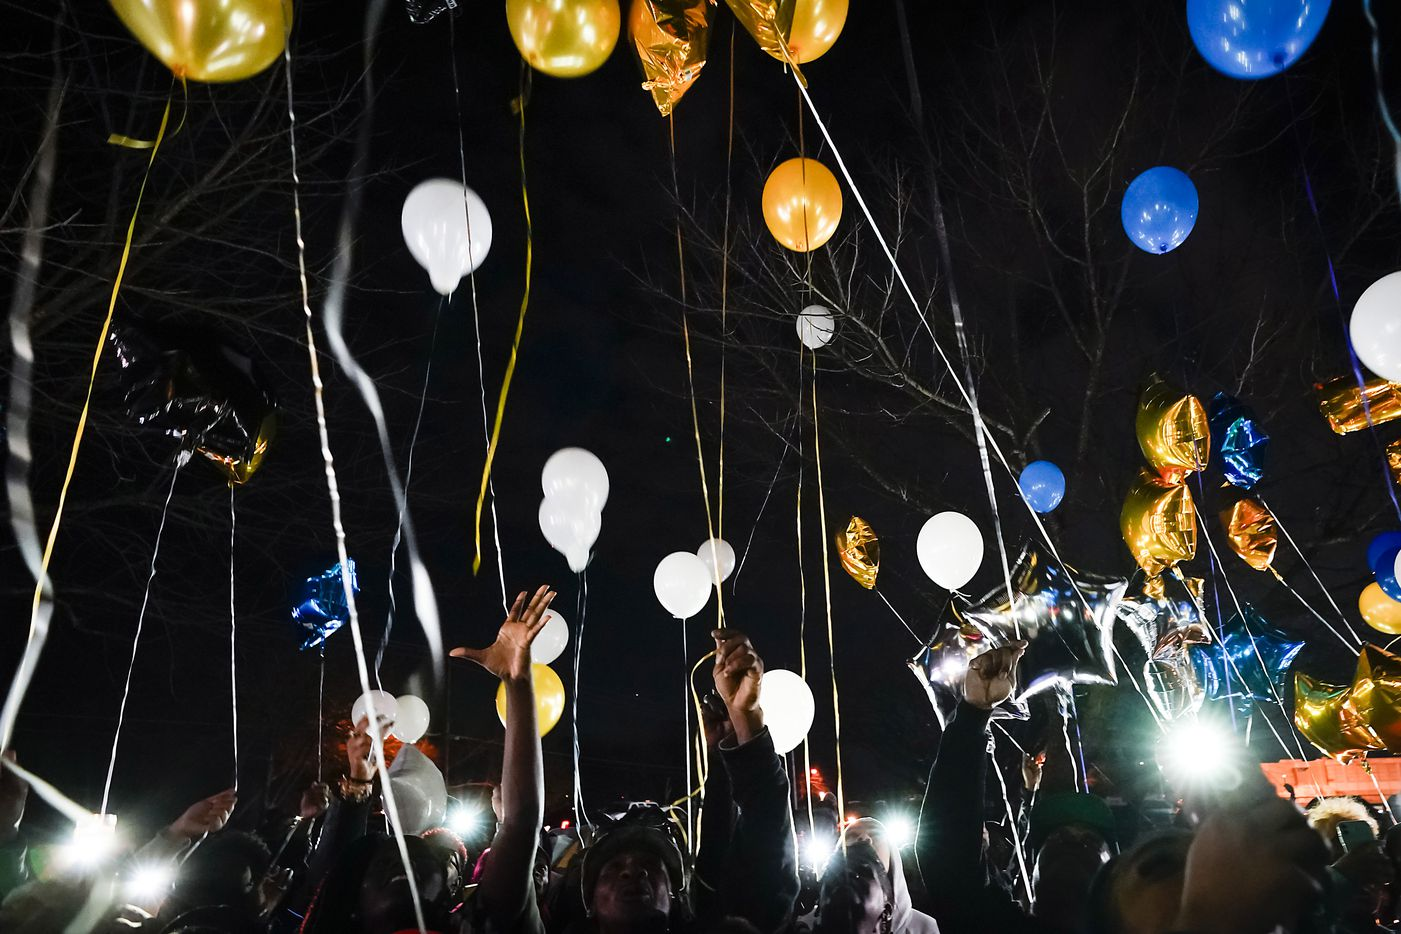 """Mourners release balloons during a vigil for Marc """"Flea"""" Strickland, an 18-year-old victim of a shooting at Dallas ISD basketball game, at Bushman Park on Sunday, Jan. 19, 2020."""